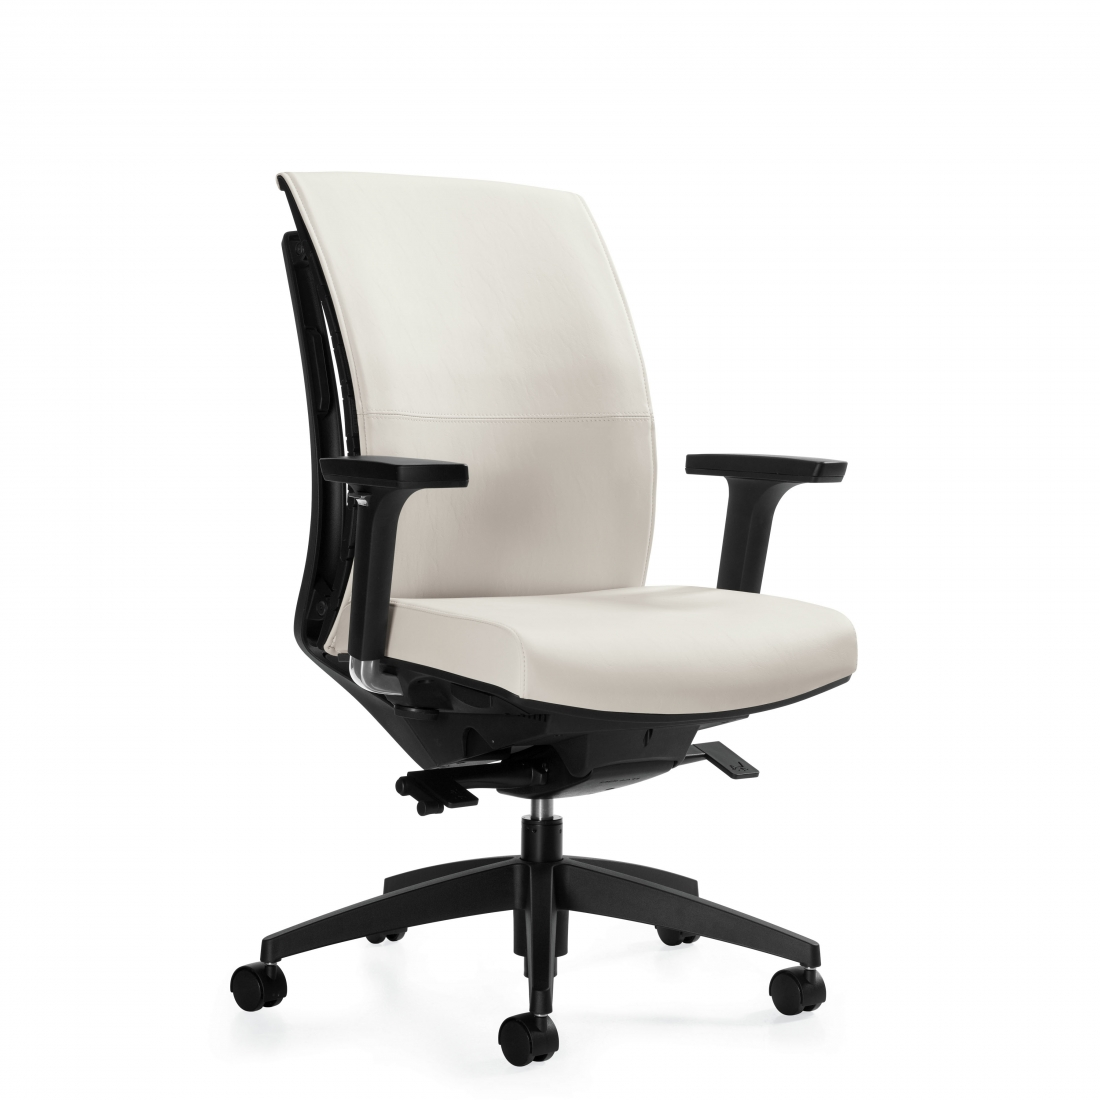 Furniture Clearance Vancouver Arti Clearance Chair Buy Rite Business Furnishings